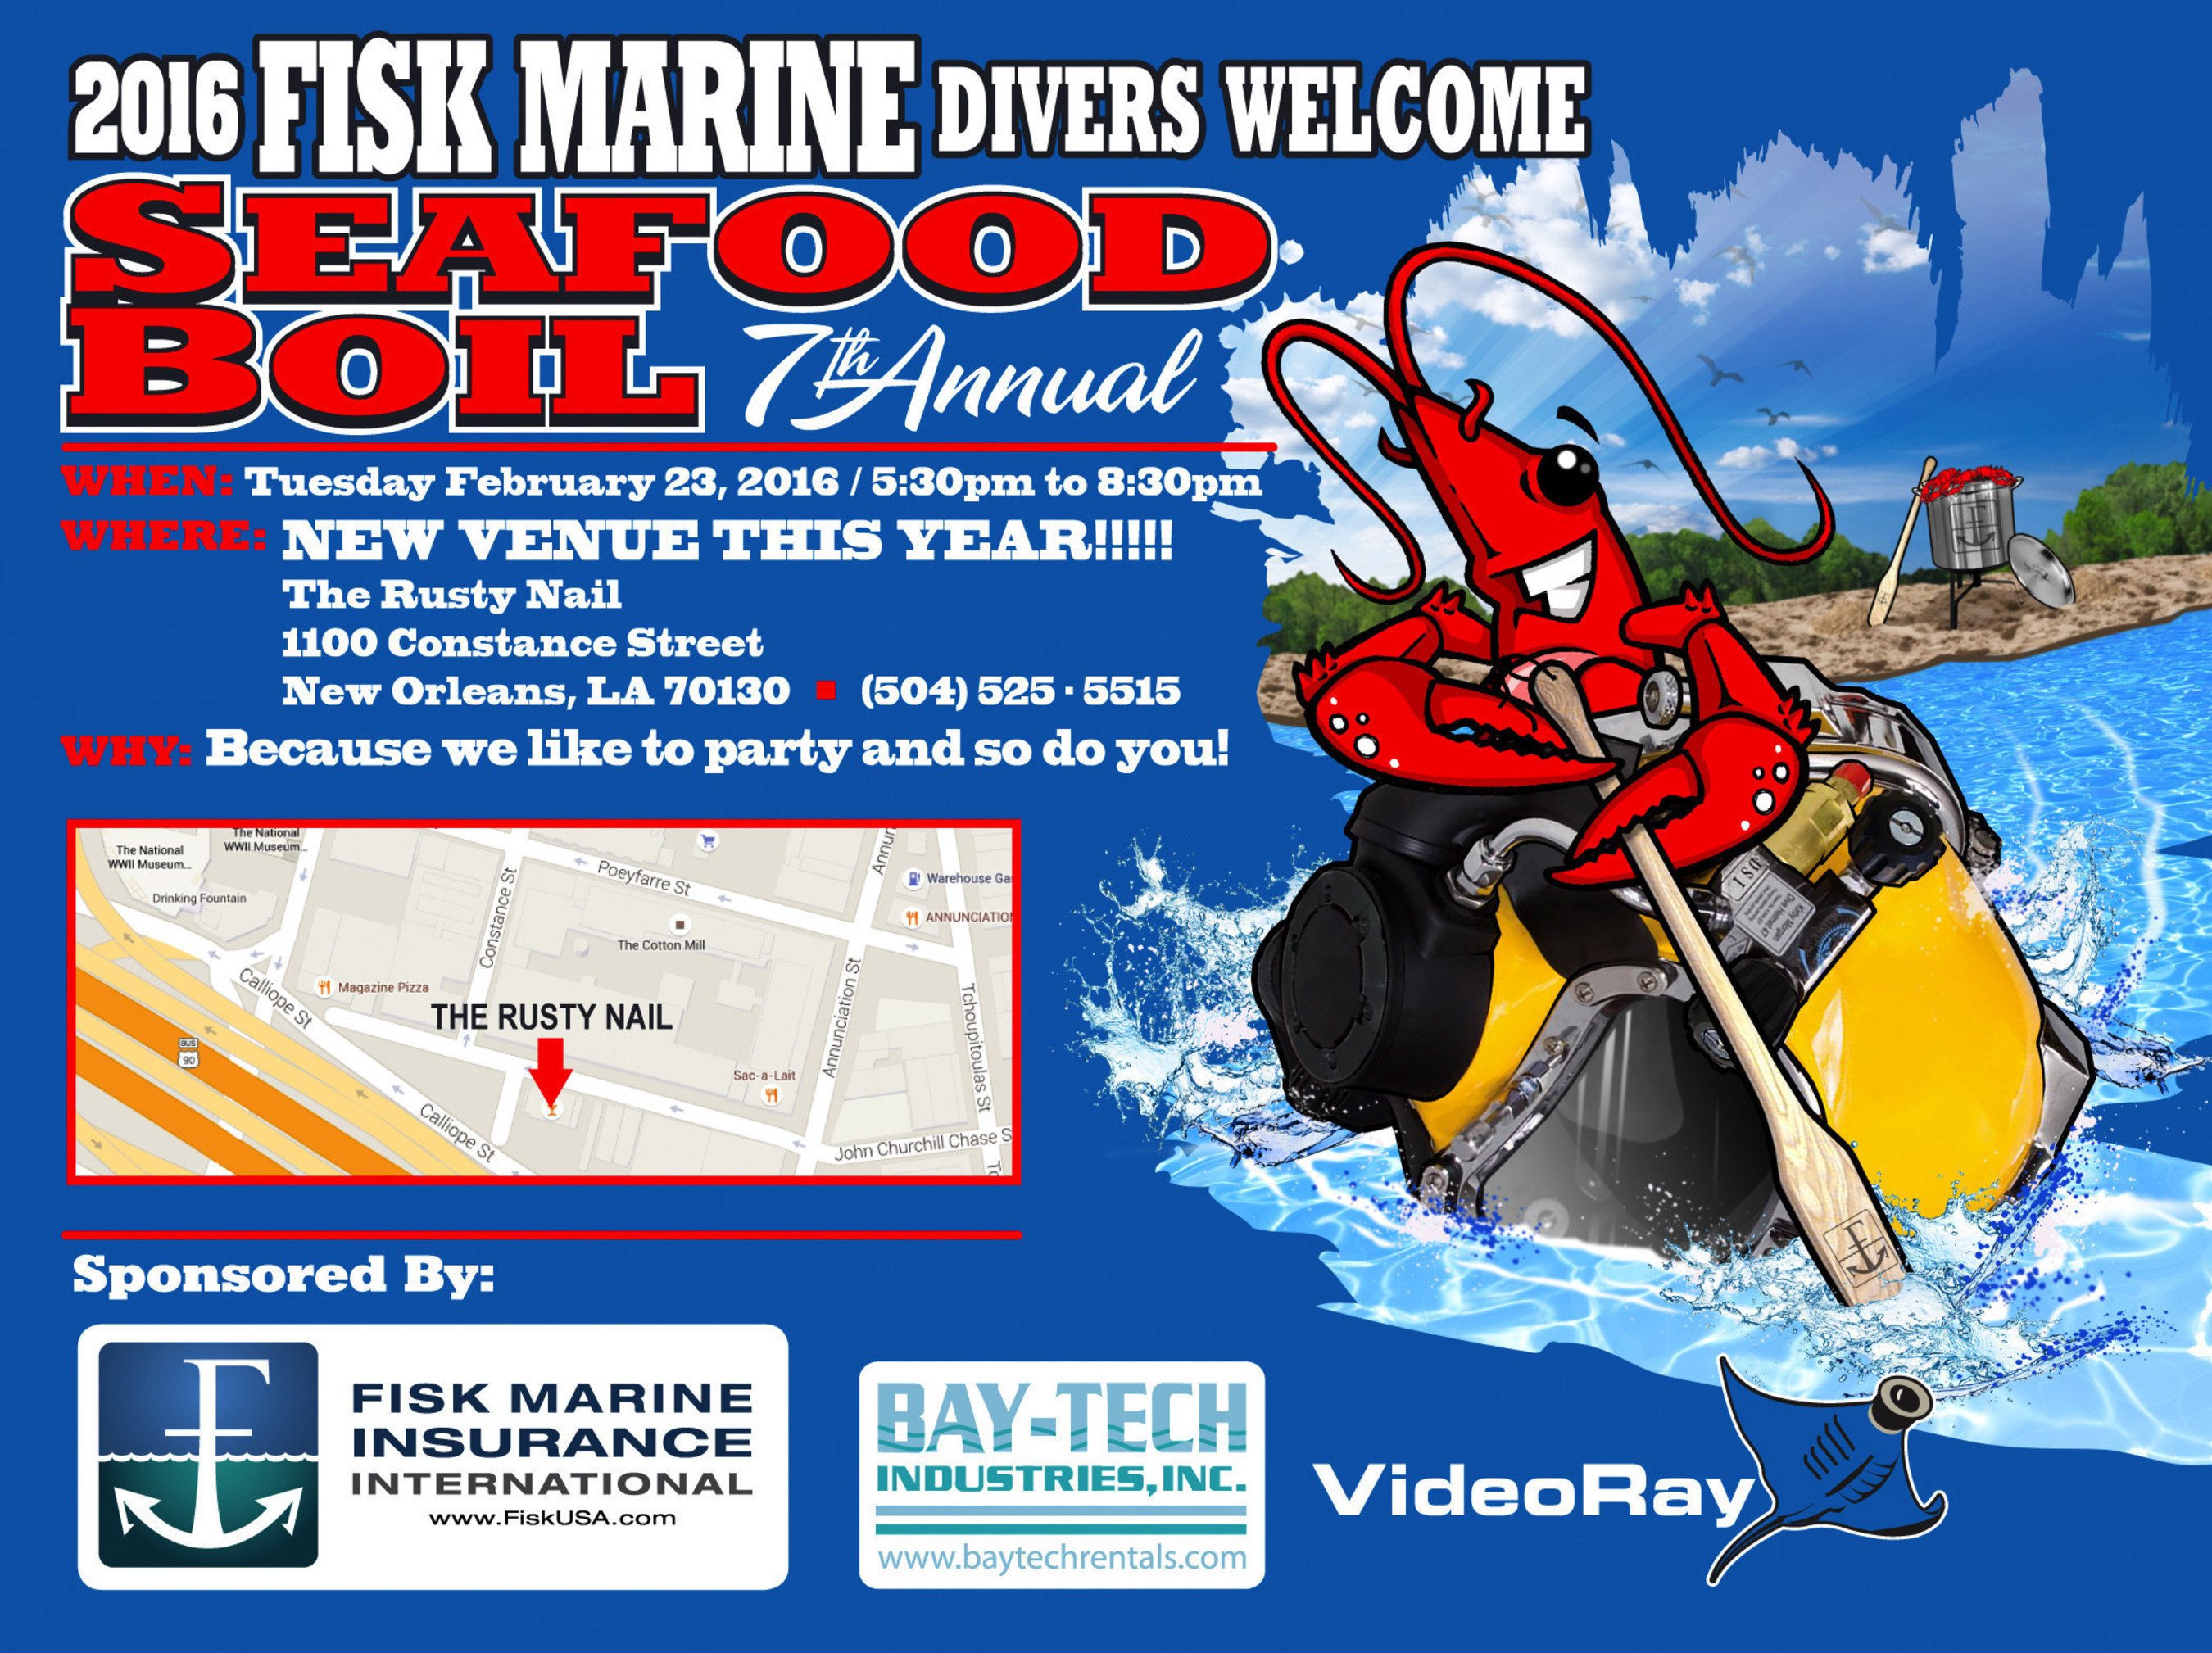 Fisk Marine Announces Panel Discussion and 7th Annual Divers' Welcome Seafood Boil